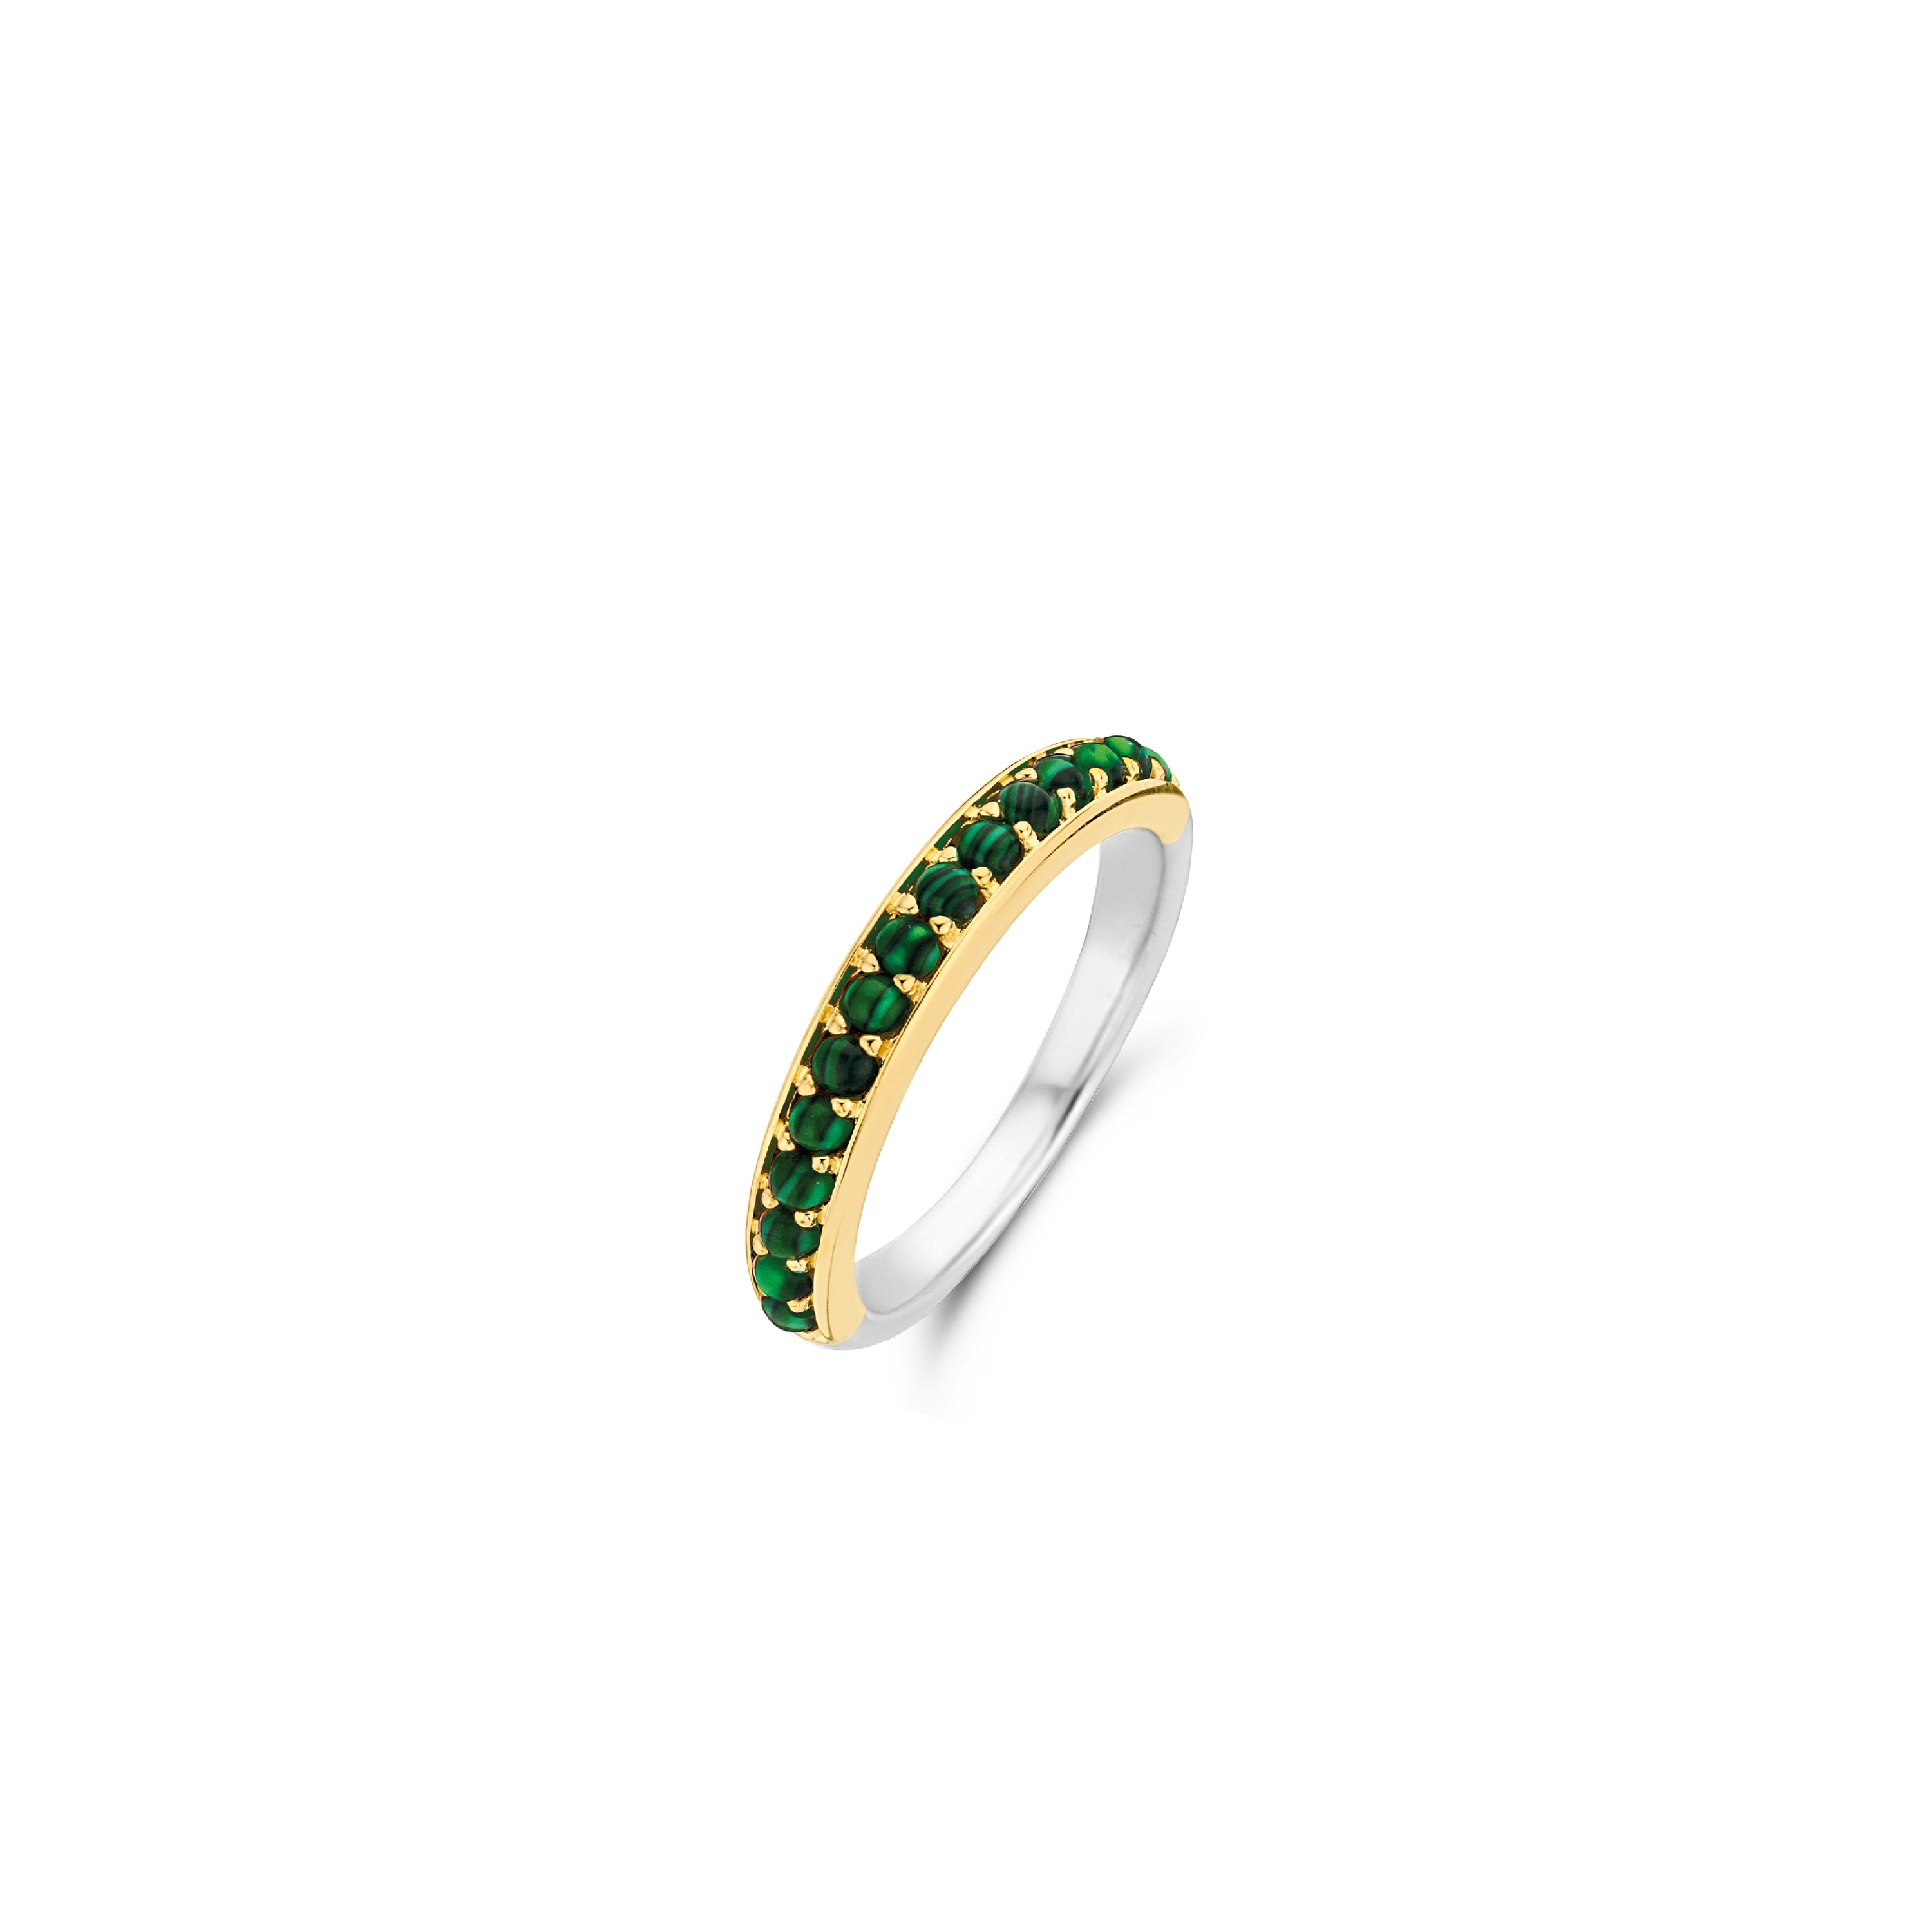 TI SENTO Milano Ring 12123MA Zilver gold plated Maat 52